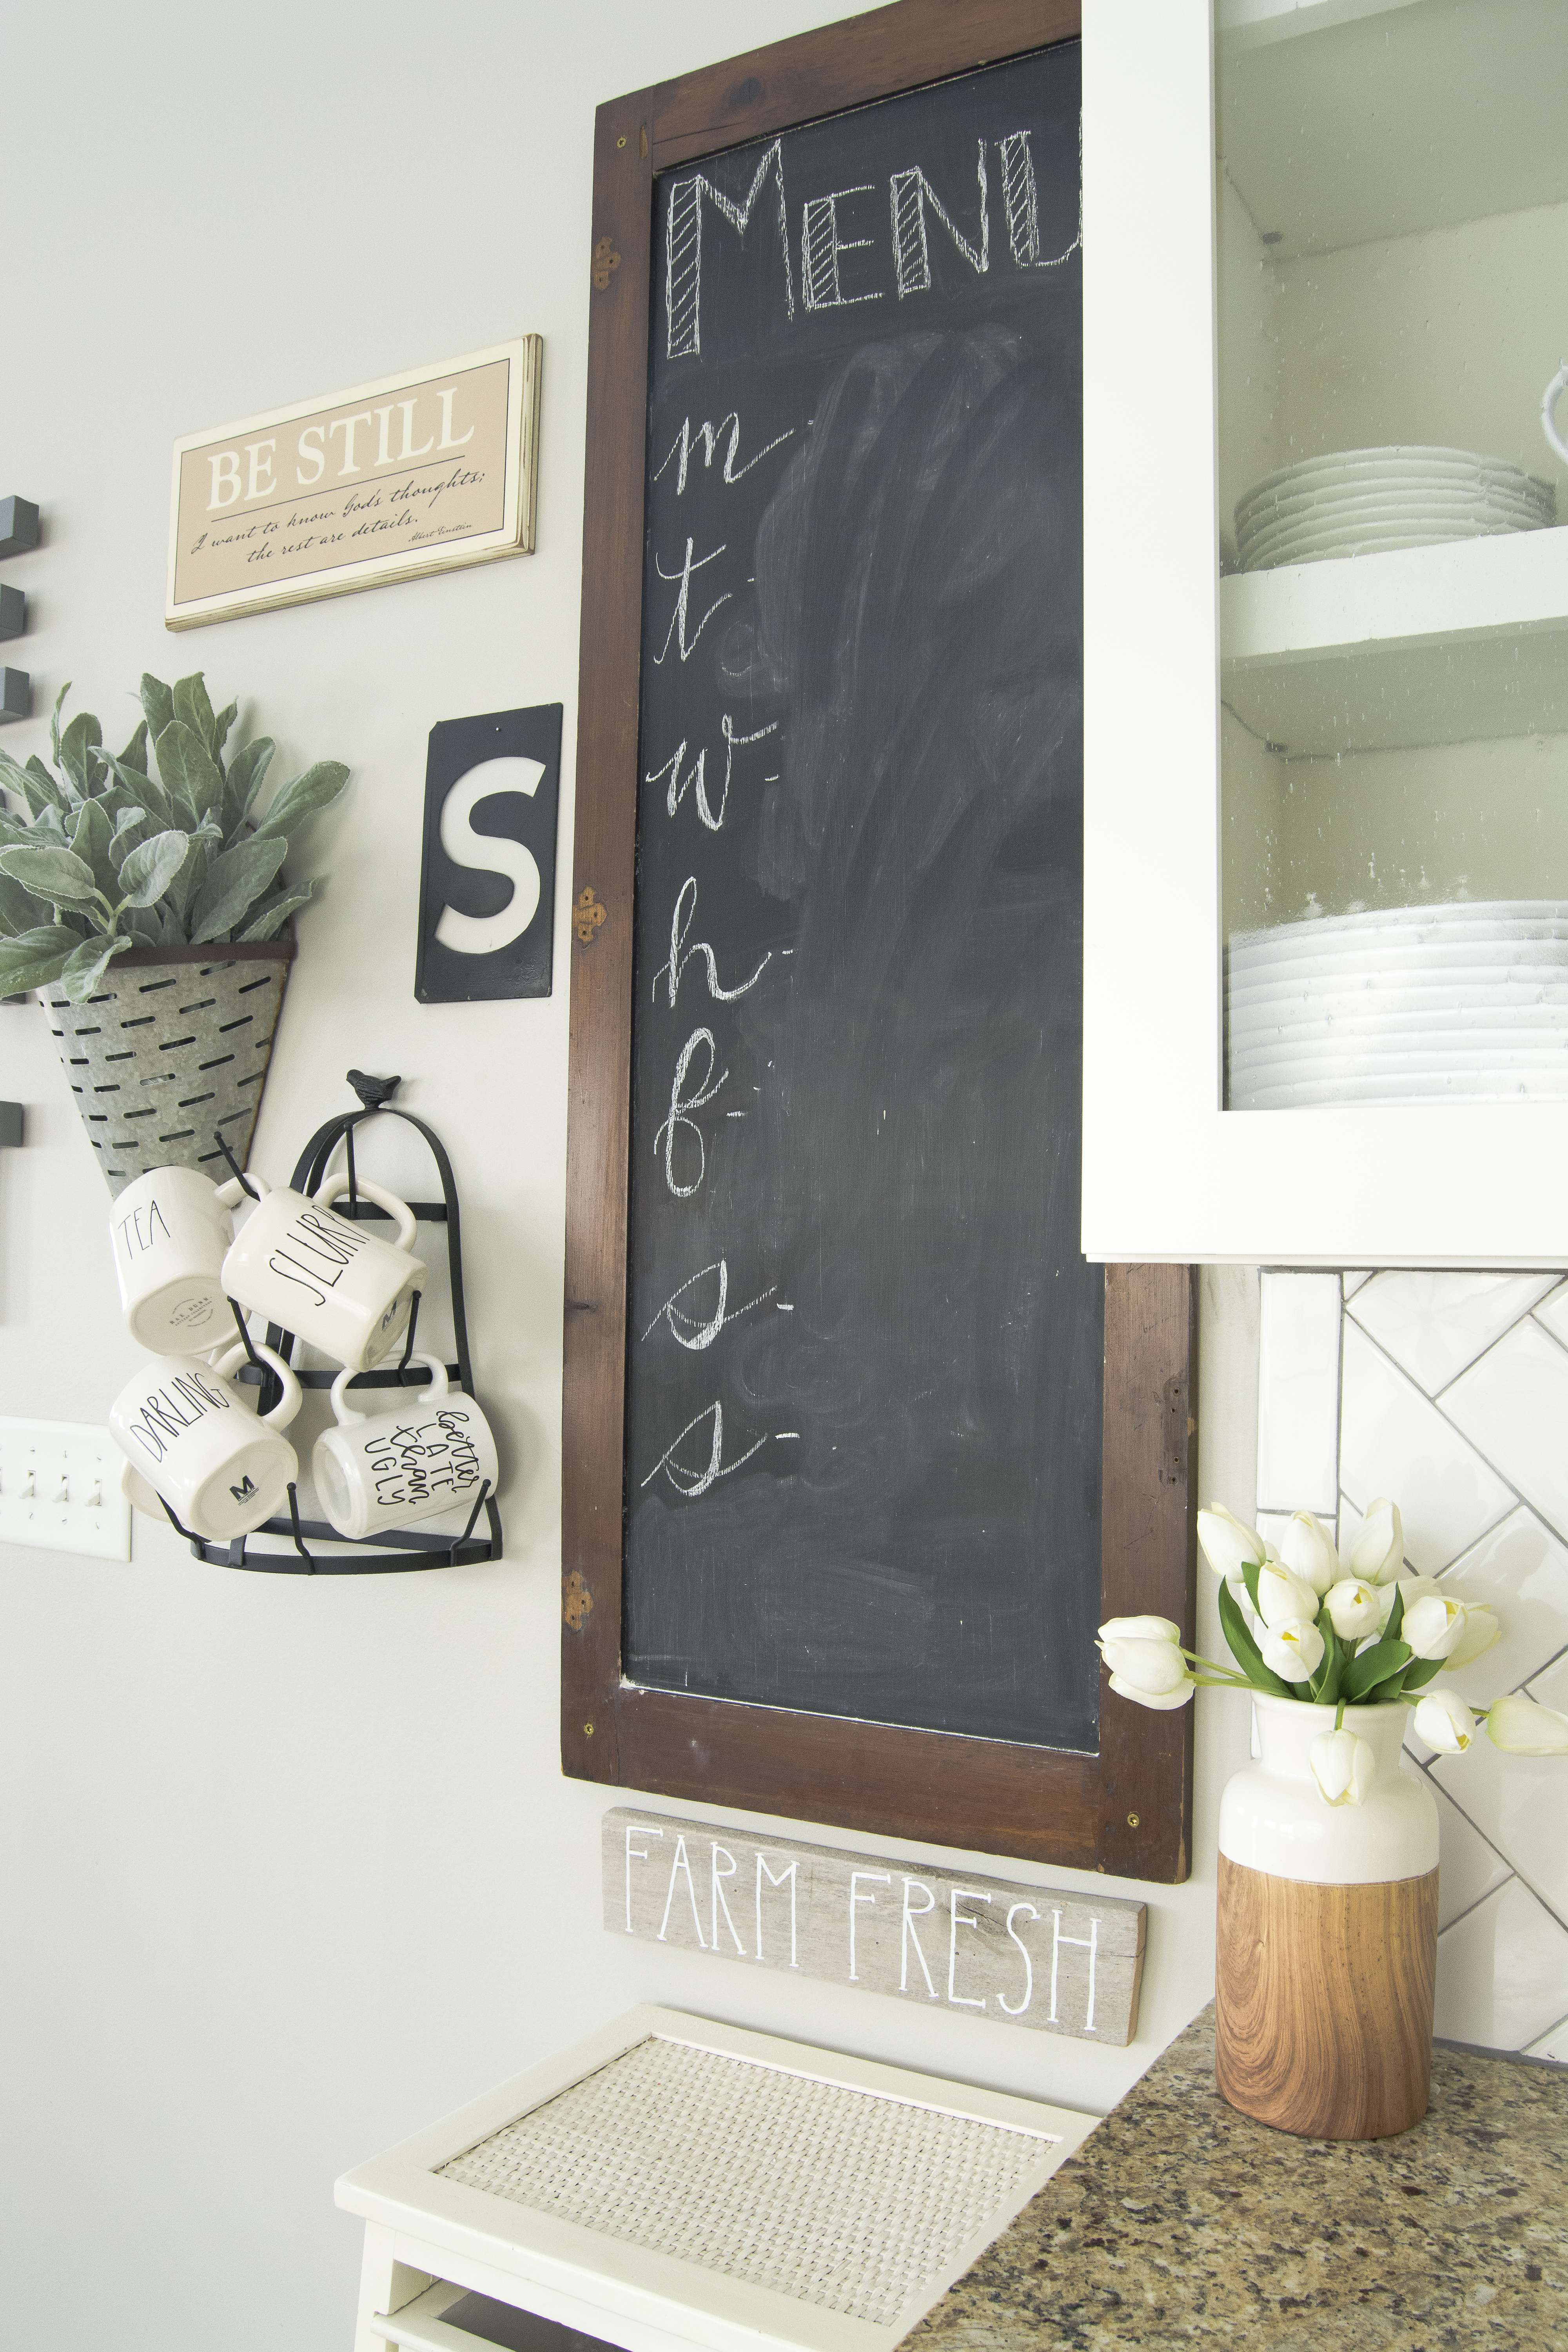 Looking for ways to incorporate signs into your farmhouse style kitchen? Here I show you how I use Be Still and Know signs in my home decor.